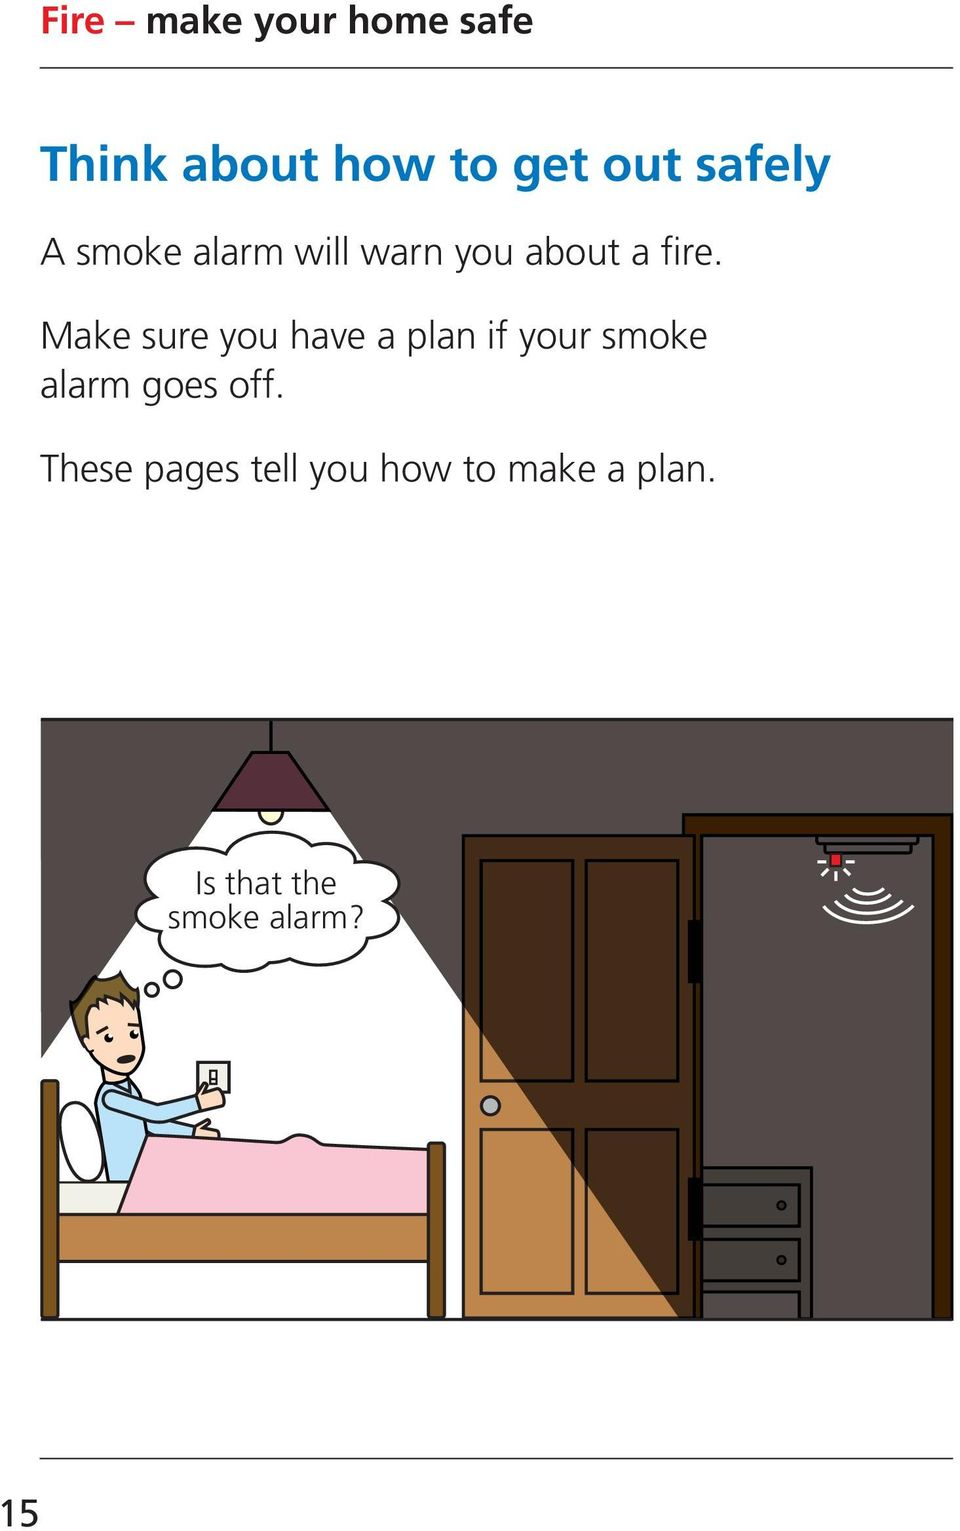 Make sure you have a plan if your smoke alarm